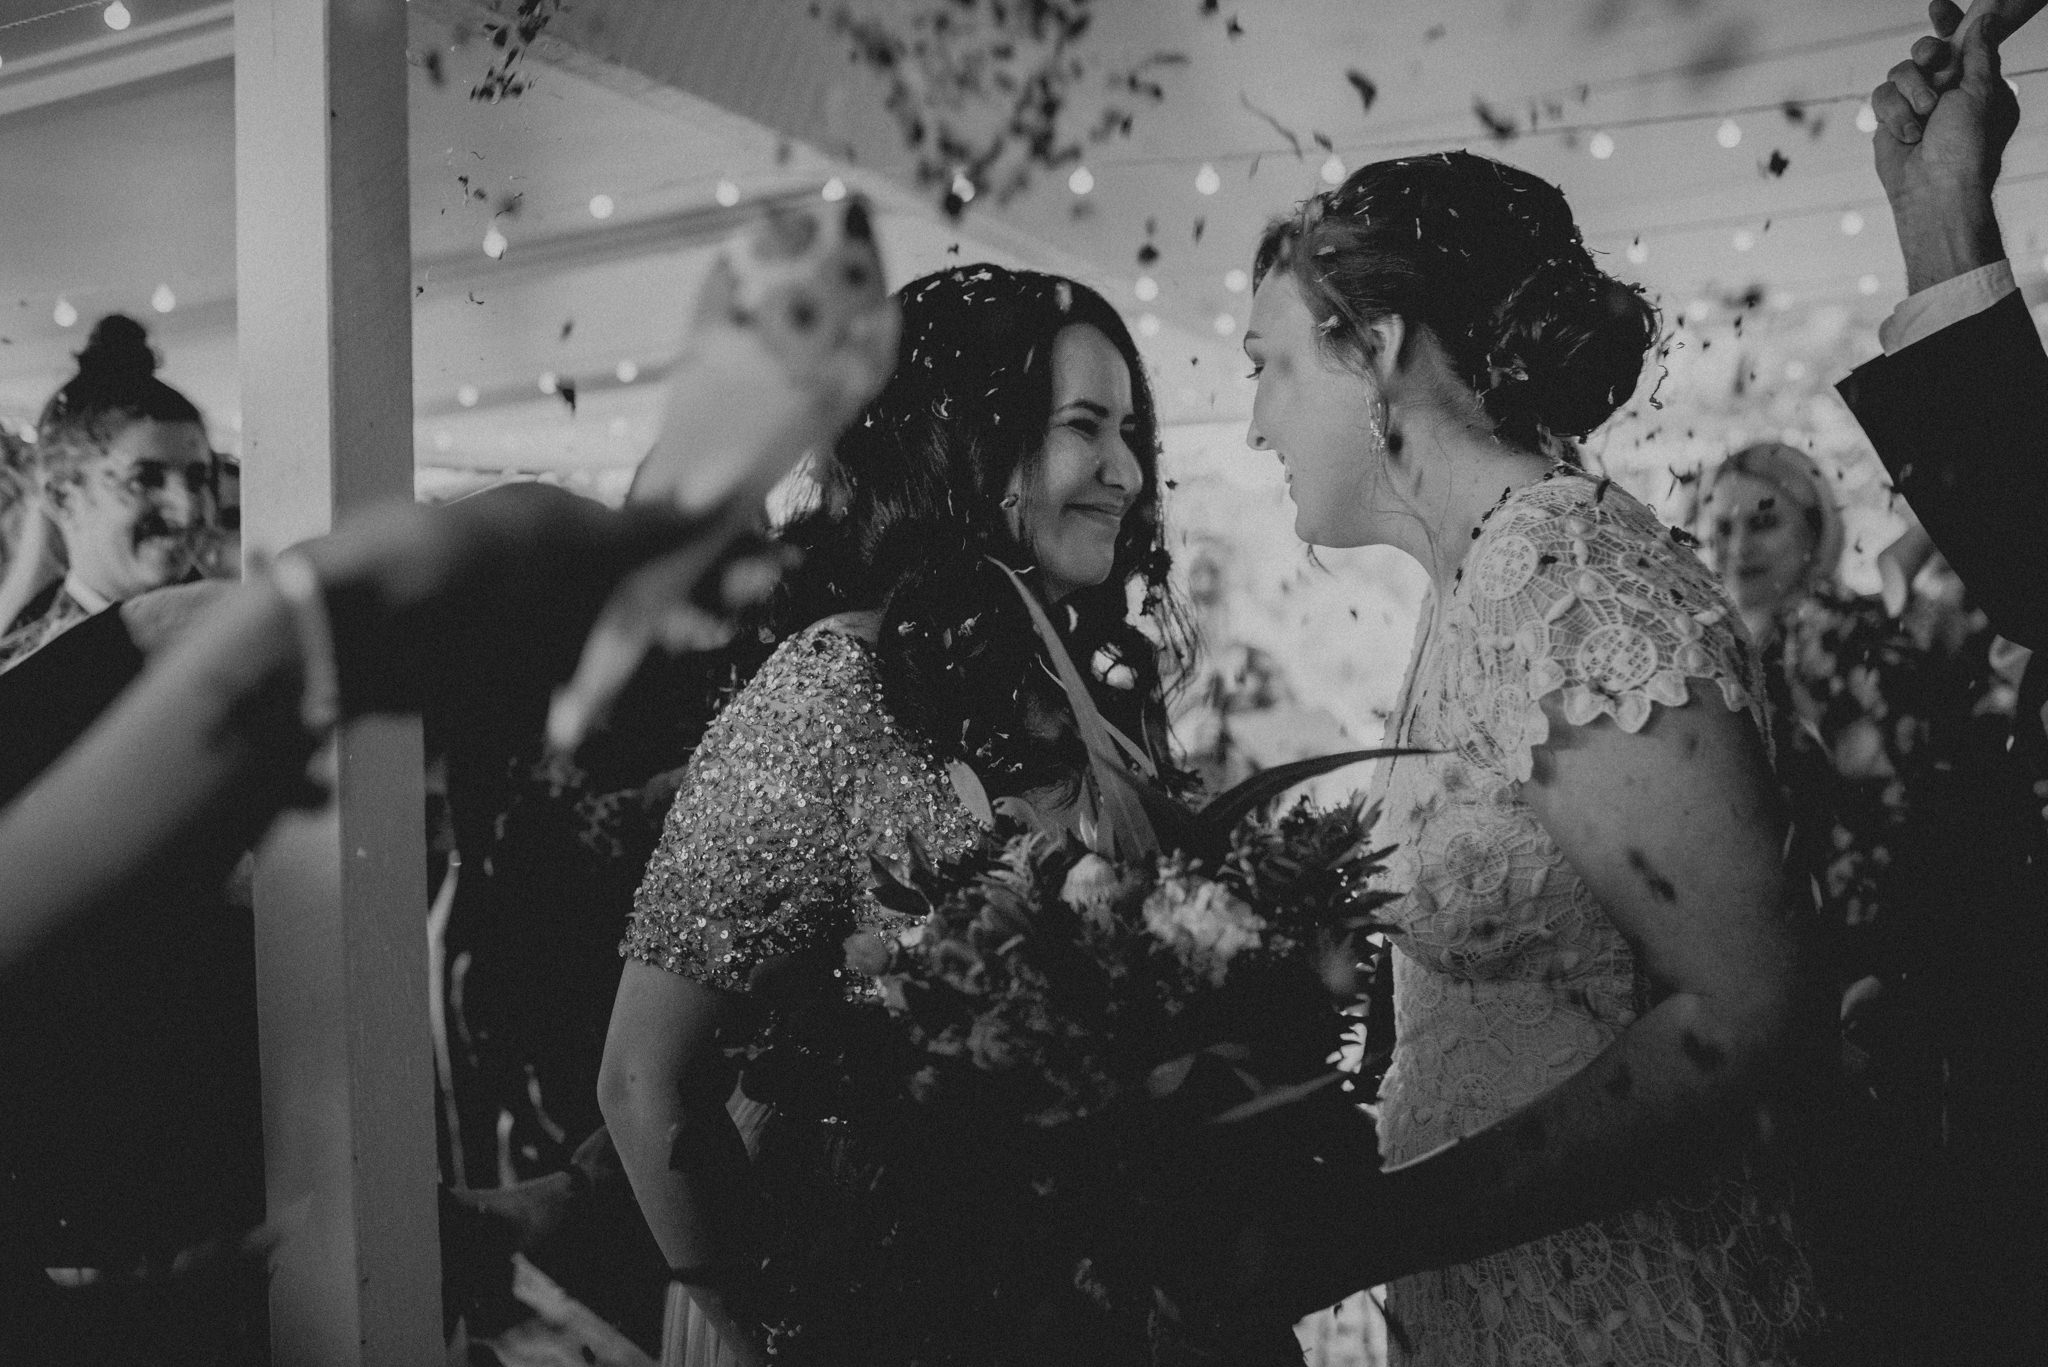 Brides laughing and smiling as hands throw flower petals on them